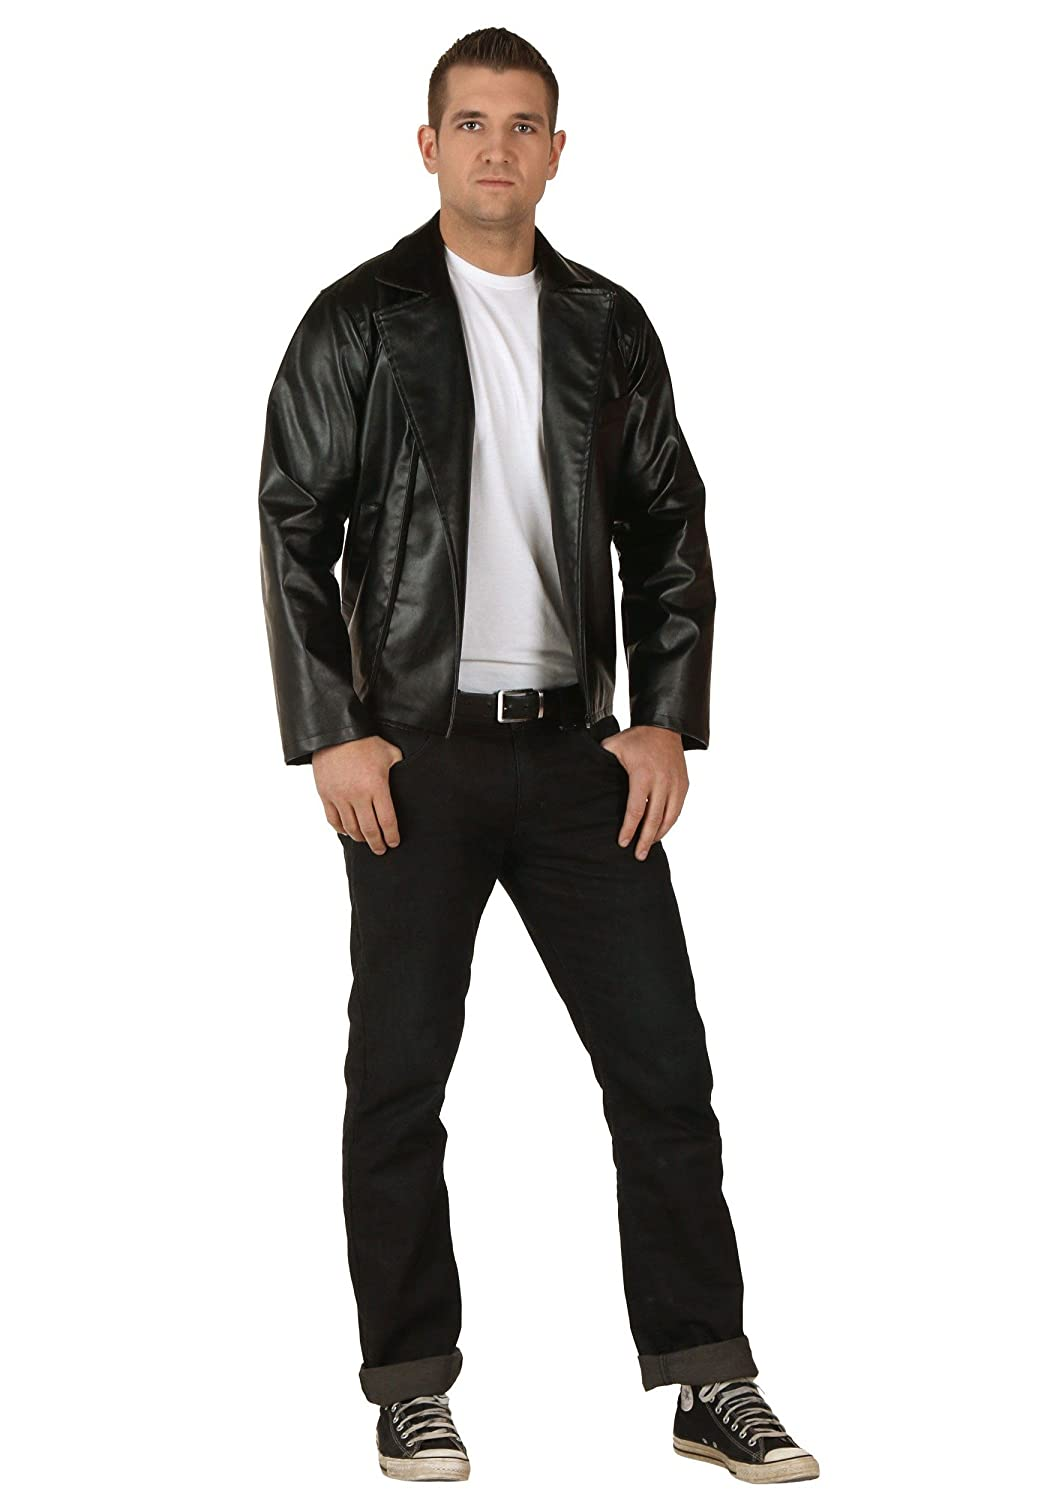 FunCostumes Adult Licensed Grease T-Birds Mens Faux Leather Jacket - L